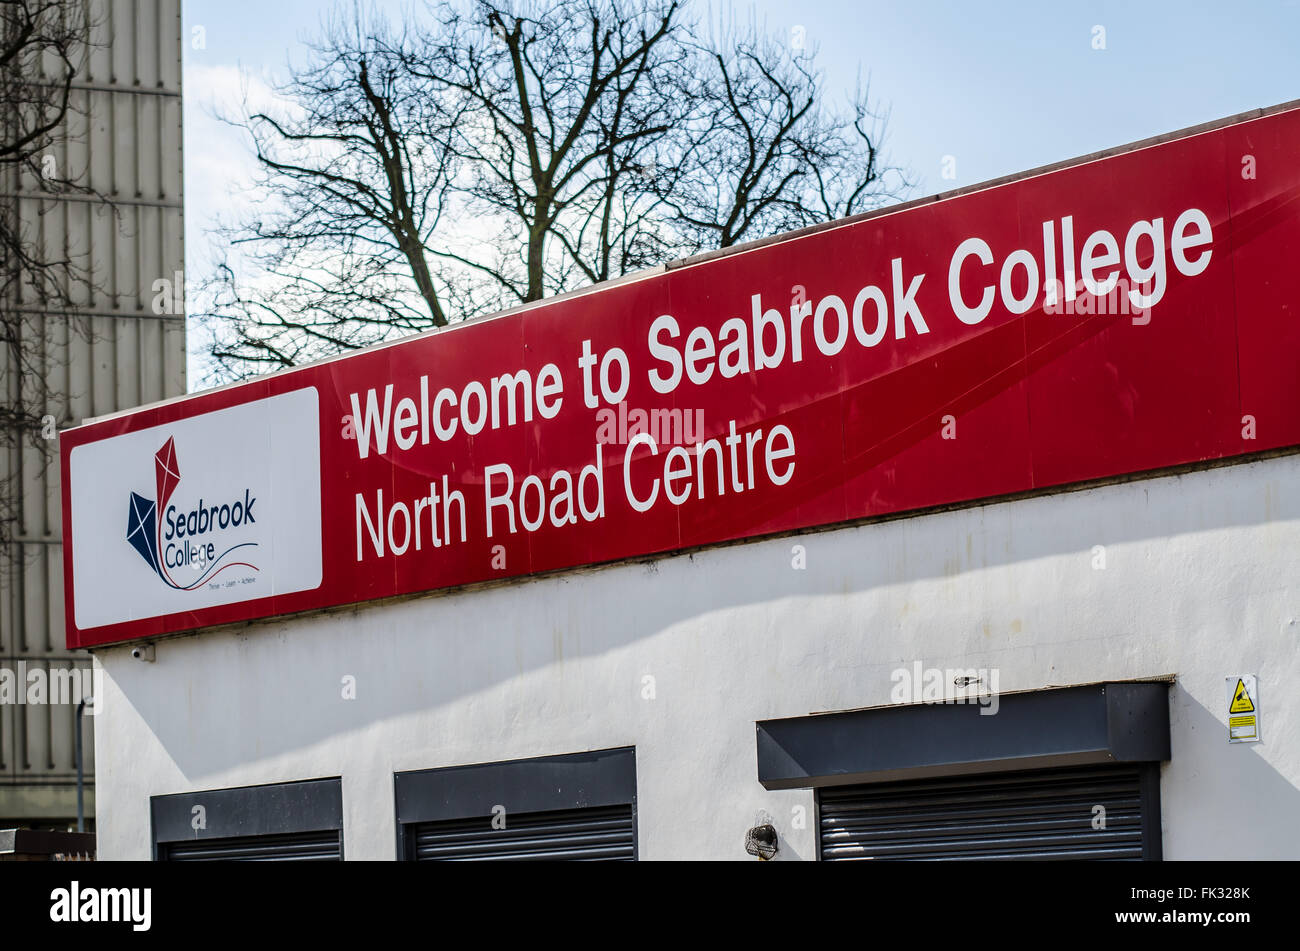 Seabrook College works in partnership with a wide range of agencies to provide high quality education for difficult - Stock Image